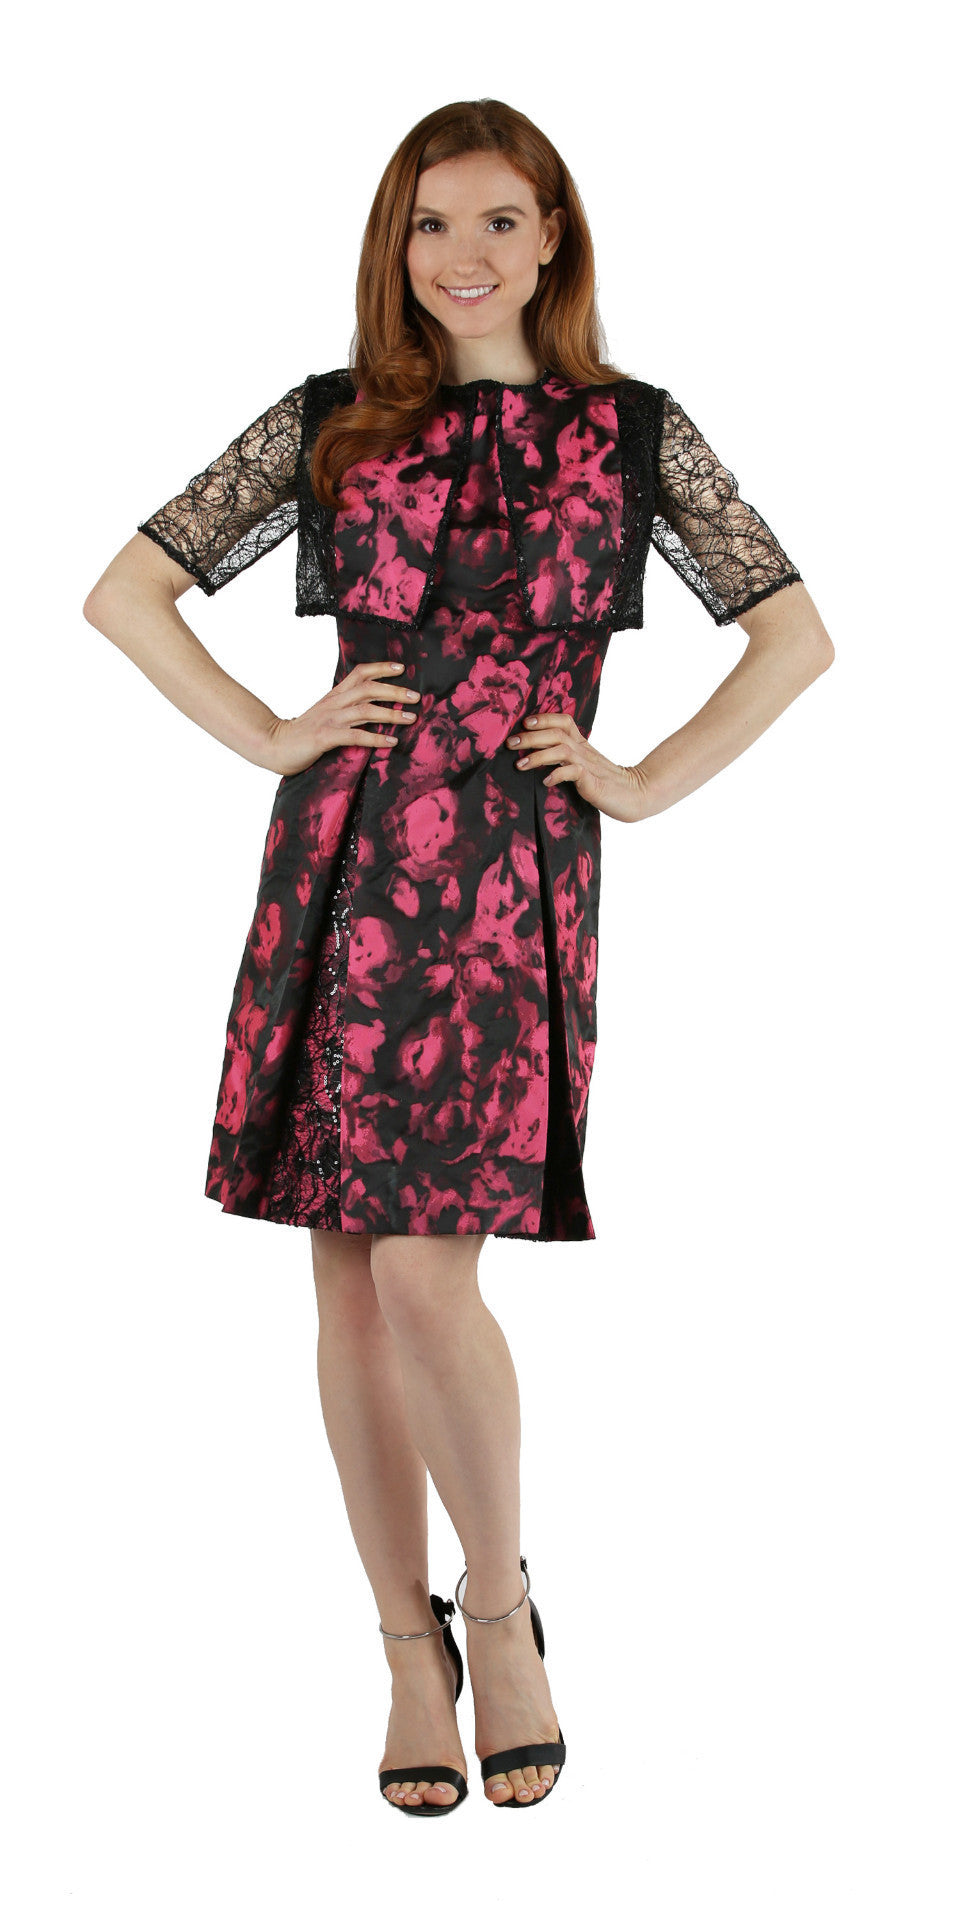 Black & Pink Floral Brocade Dress with Sequin Net Inlays and Matching Bolero Jacket